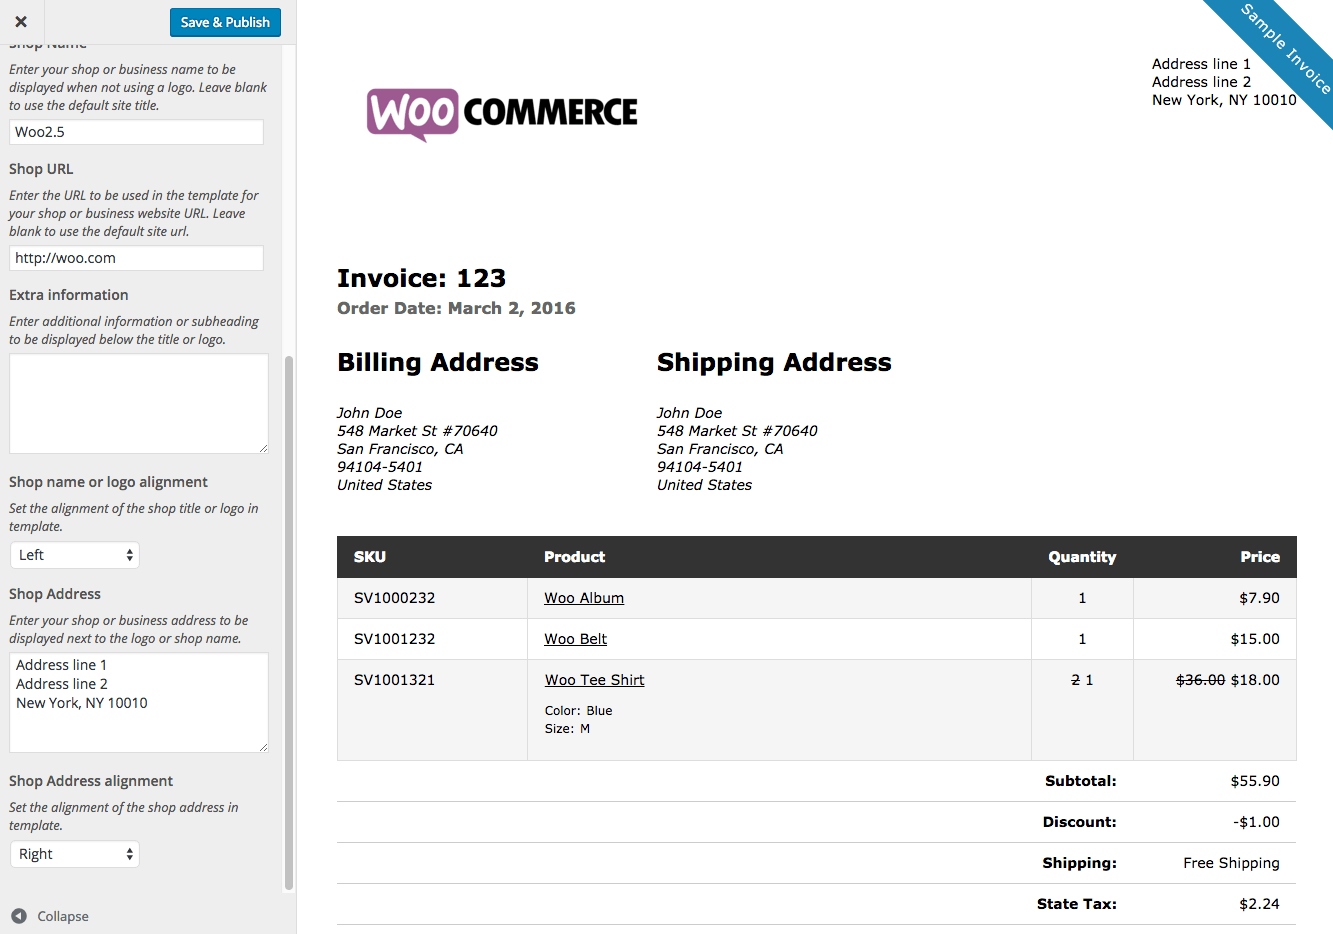 Maidofhonortoastus  Seductive Woocommerce Print Invoices Amp Packing Lists  Woocommerce Docs With Interesting Woocommerce Print Invoices  Packing Lists Customizer With Appealing Xero Api Invoice Also  Jeep Grand Cherokee Invoice Price In Addition Invoicing In Sap And Invoice Method As Well As Sample Tax Invoice Excel Additionally Xero Invoice Api From Docswoocommercecom With Maidofhonortoastus  Interesting Woocommerce Print Invoices Amp Packing Lists  Woocommerce Docs With Appealing Woocommerce Print Invoices  Packing Lists Customizer And Seductive Xero Api Invoice Also  Jeep Grand Cherokee Invoice Price In Addition Invoicing In Sap From Docswoocommercecom